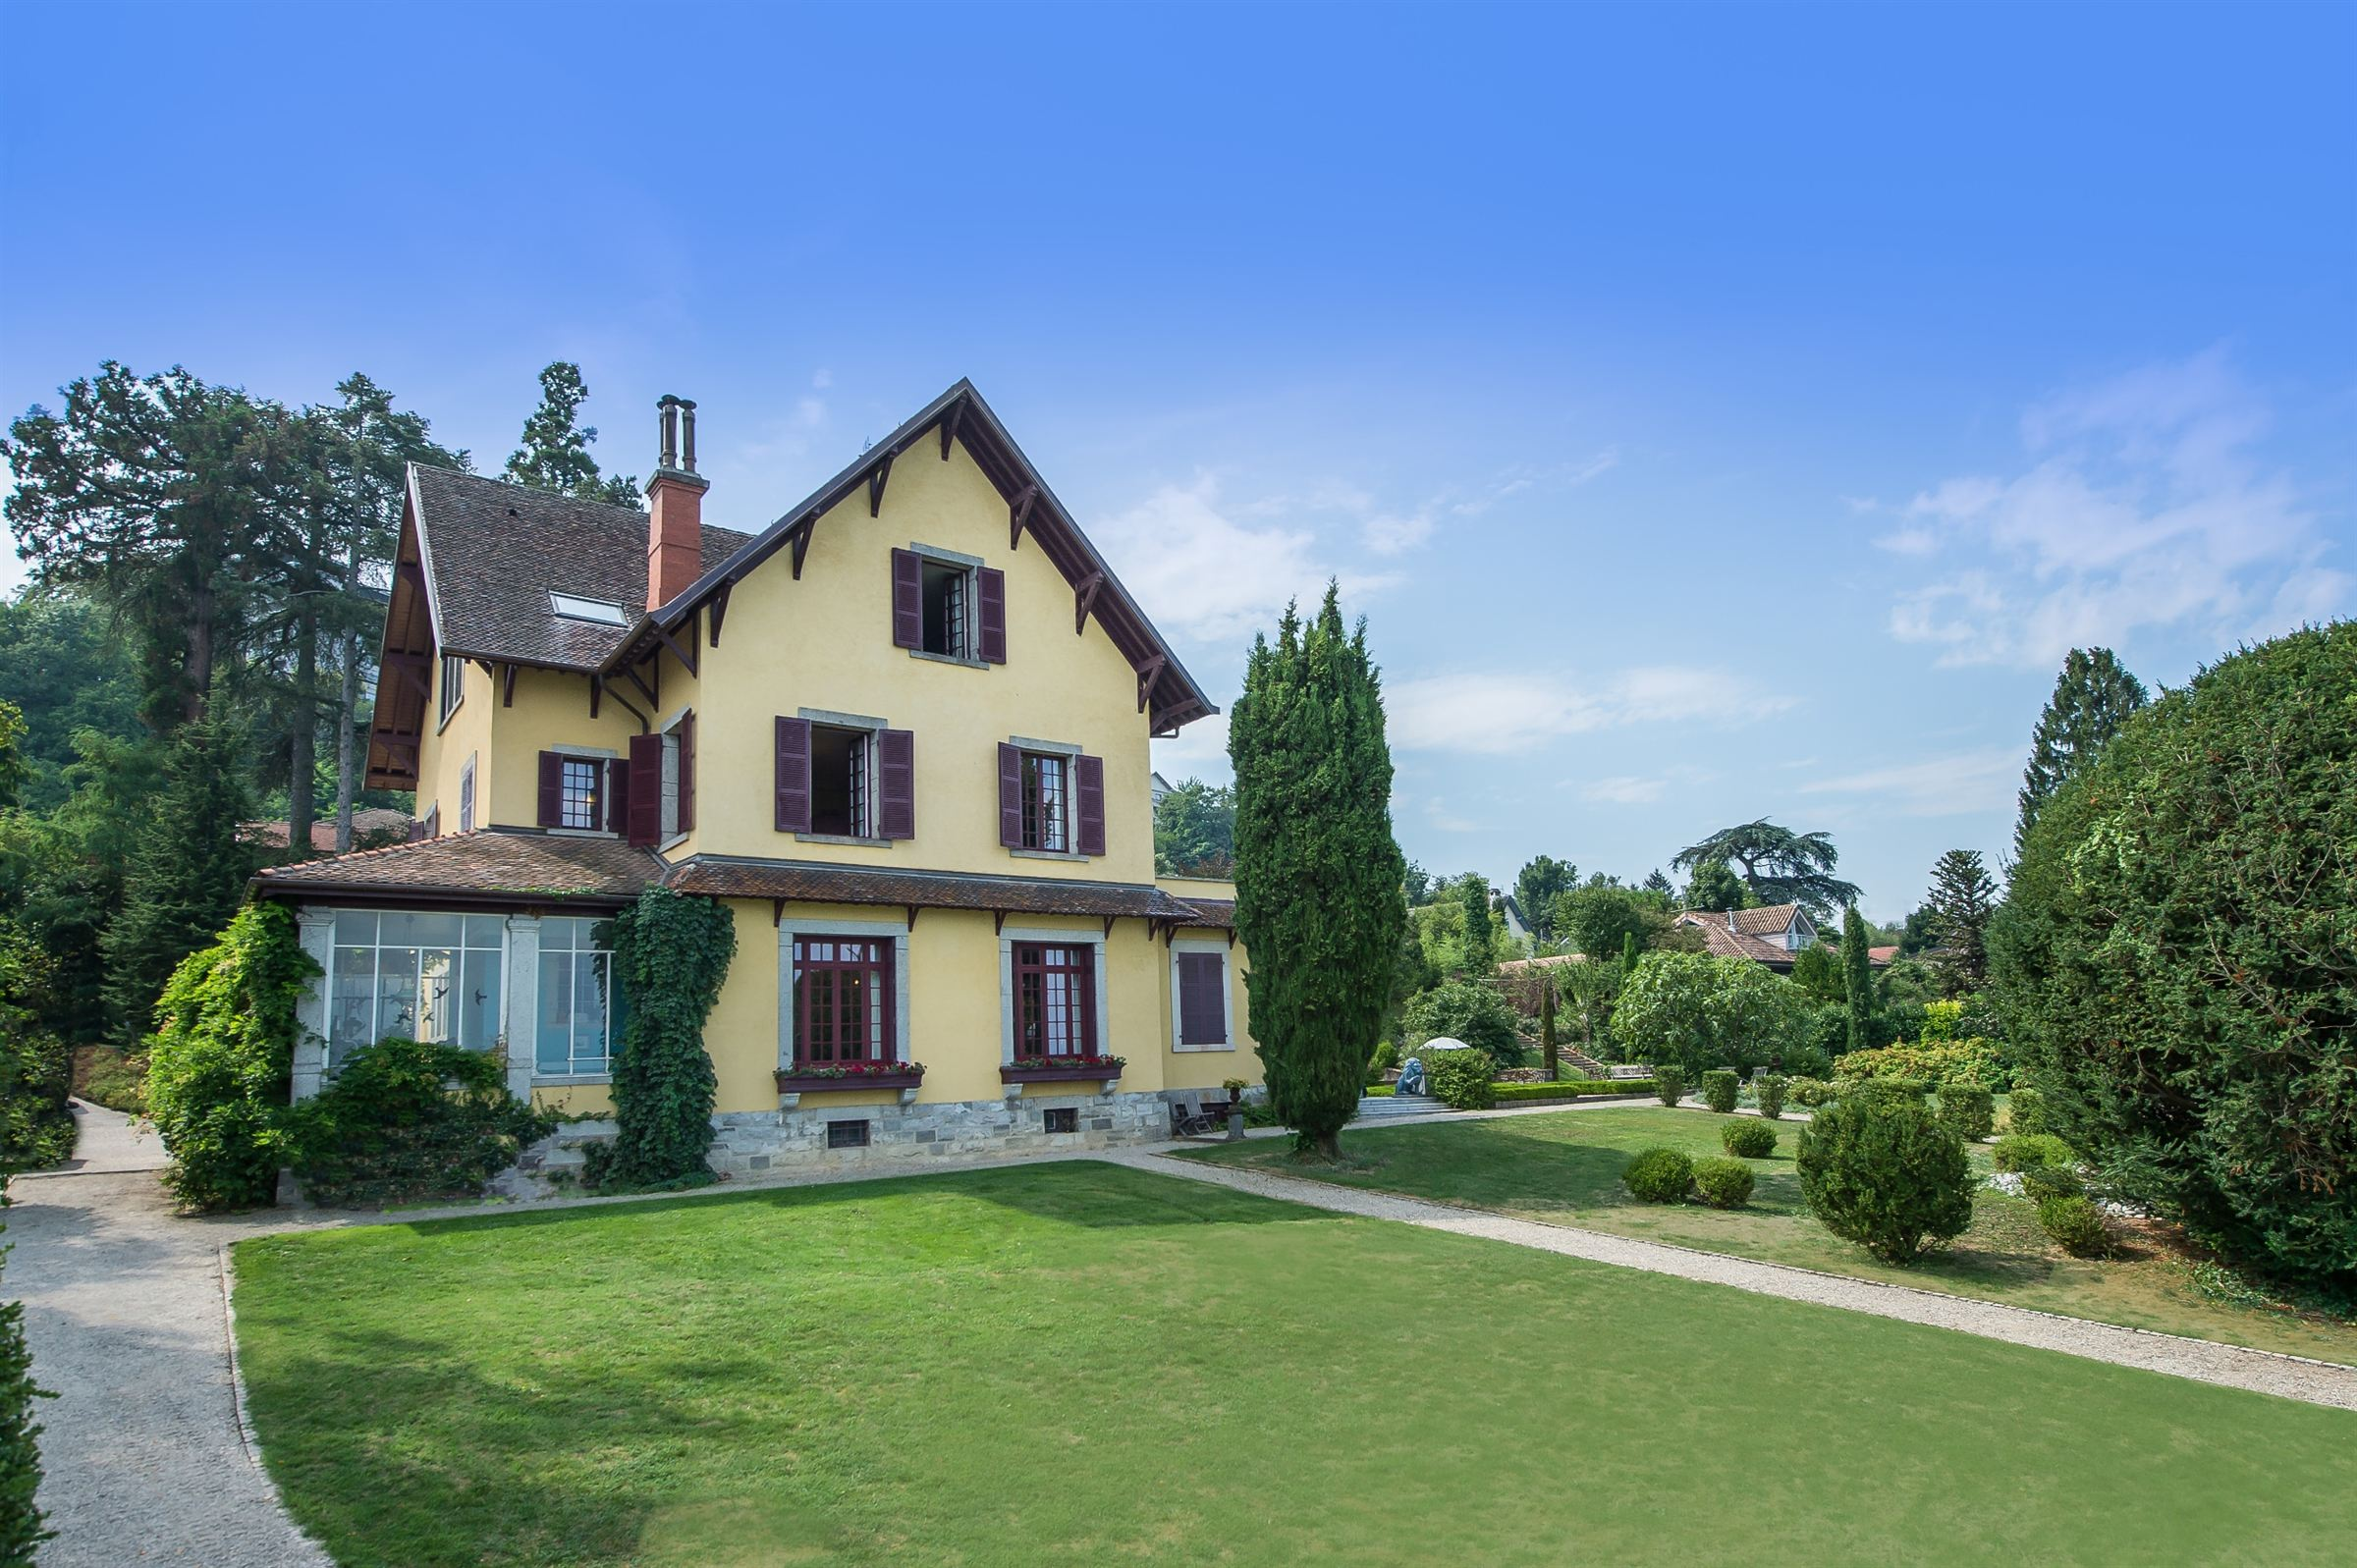 Single Family Home for Sale at EXCEPTIONAL LOCATION Thonon Les Bains, Rhone-Alpes, 74200 France